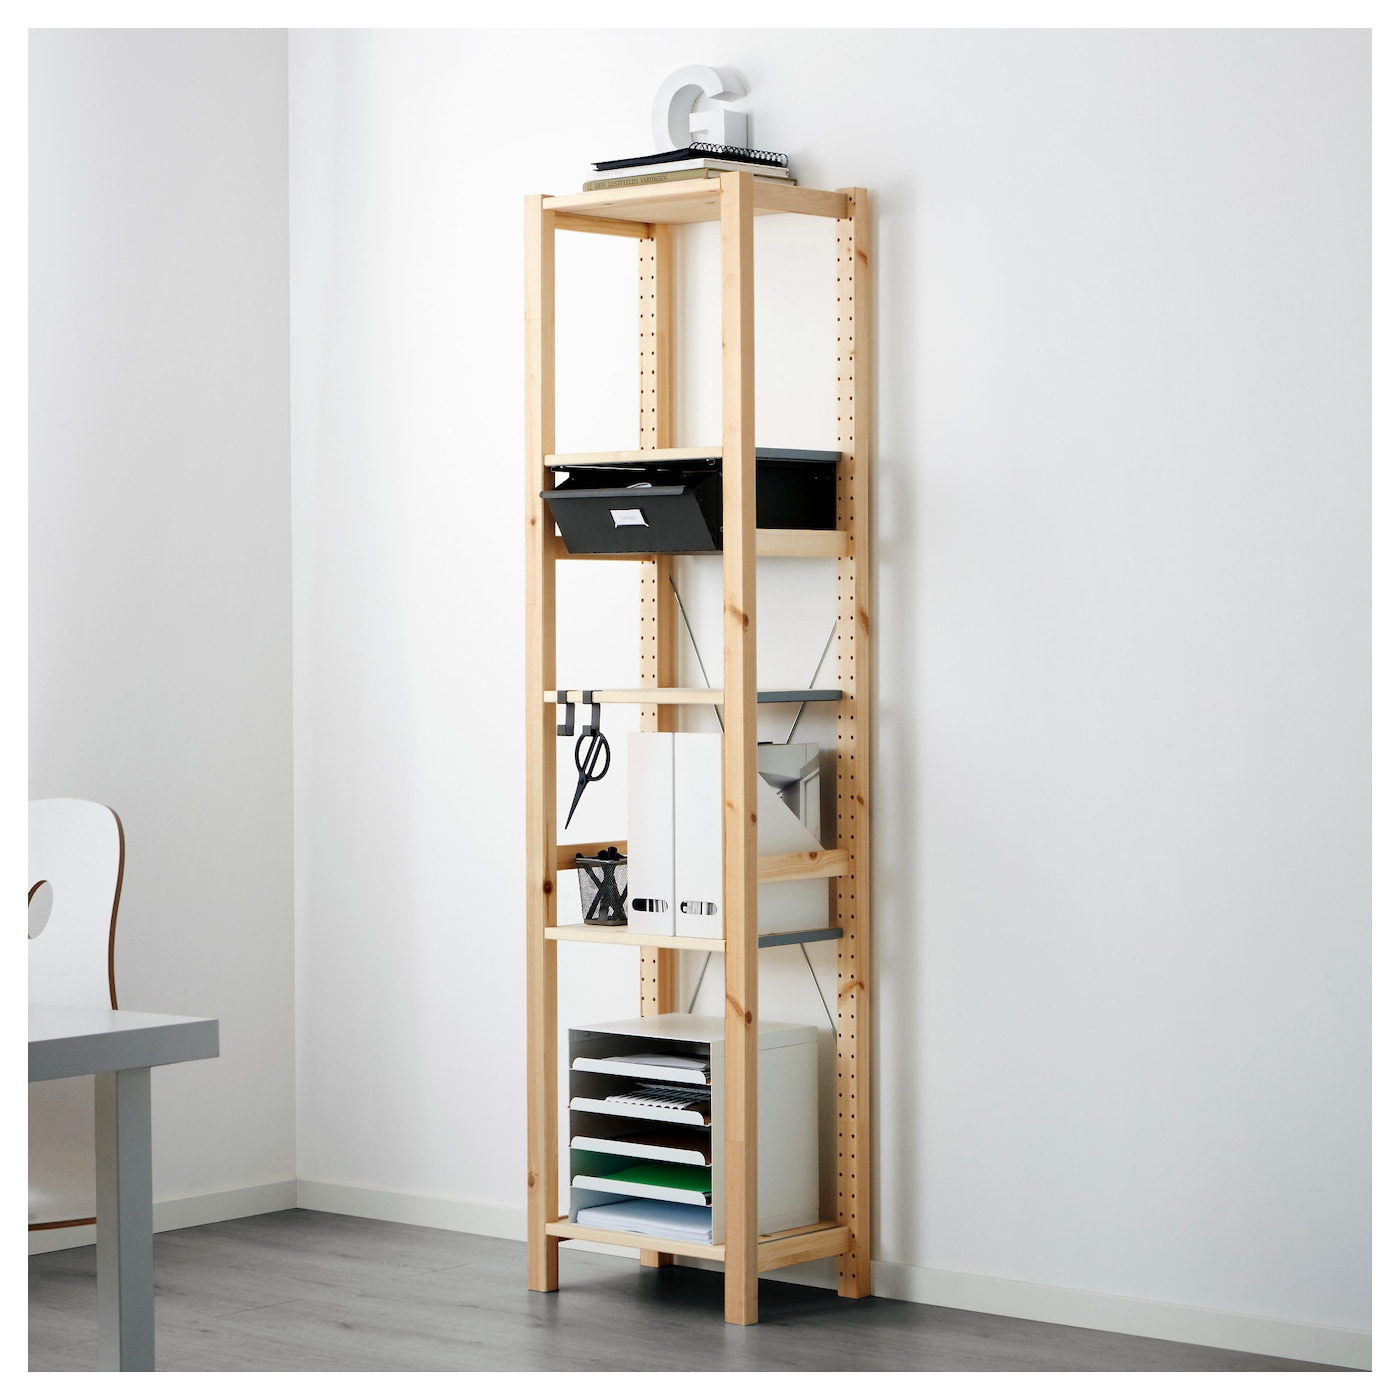 ikea schubladen kiefer kreative ideen f r innendekoration und wohndesign. Black Bedroom Furniture Sets. Home Design Ideas